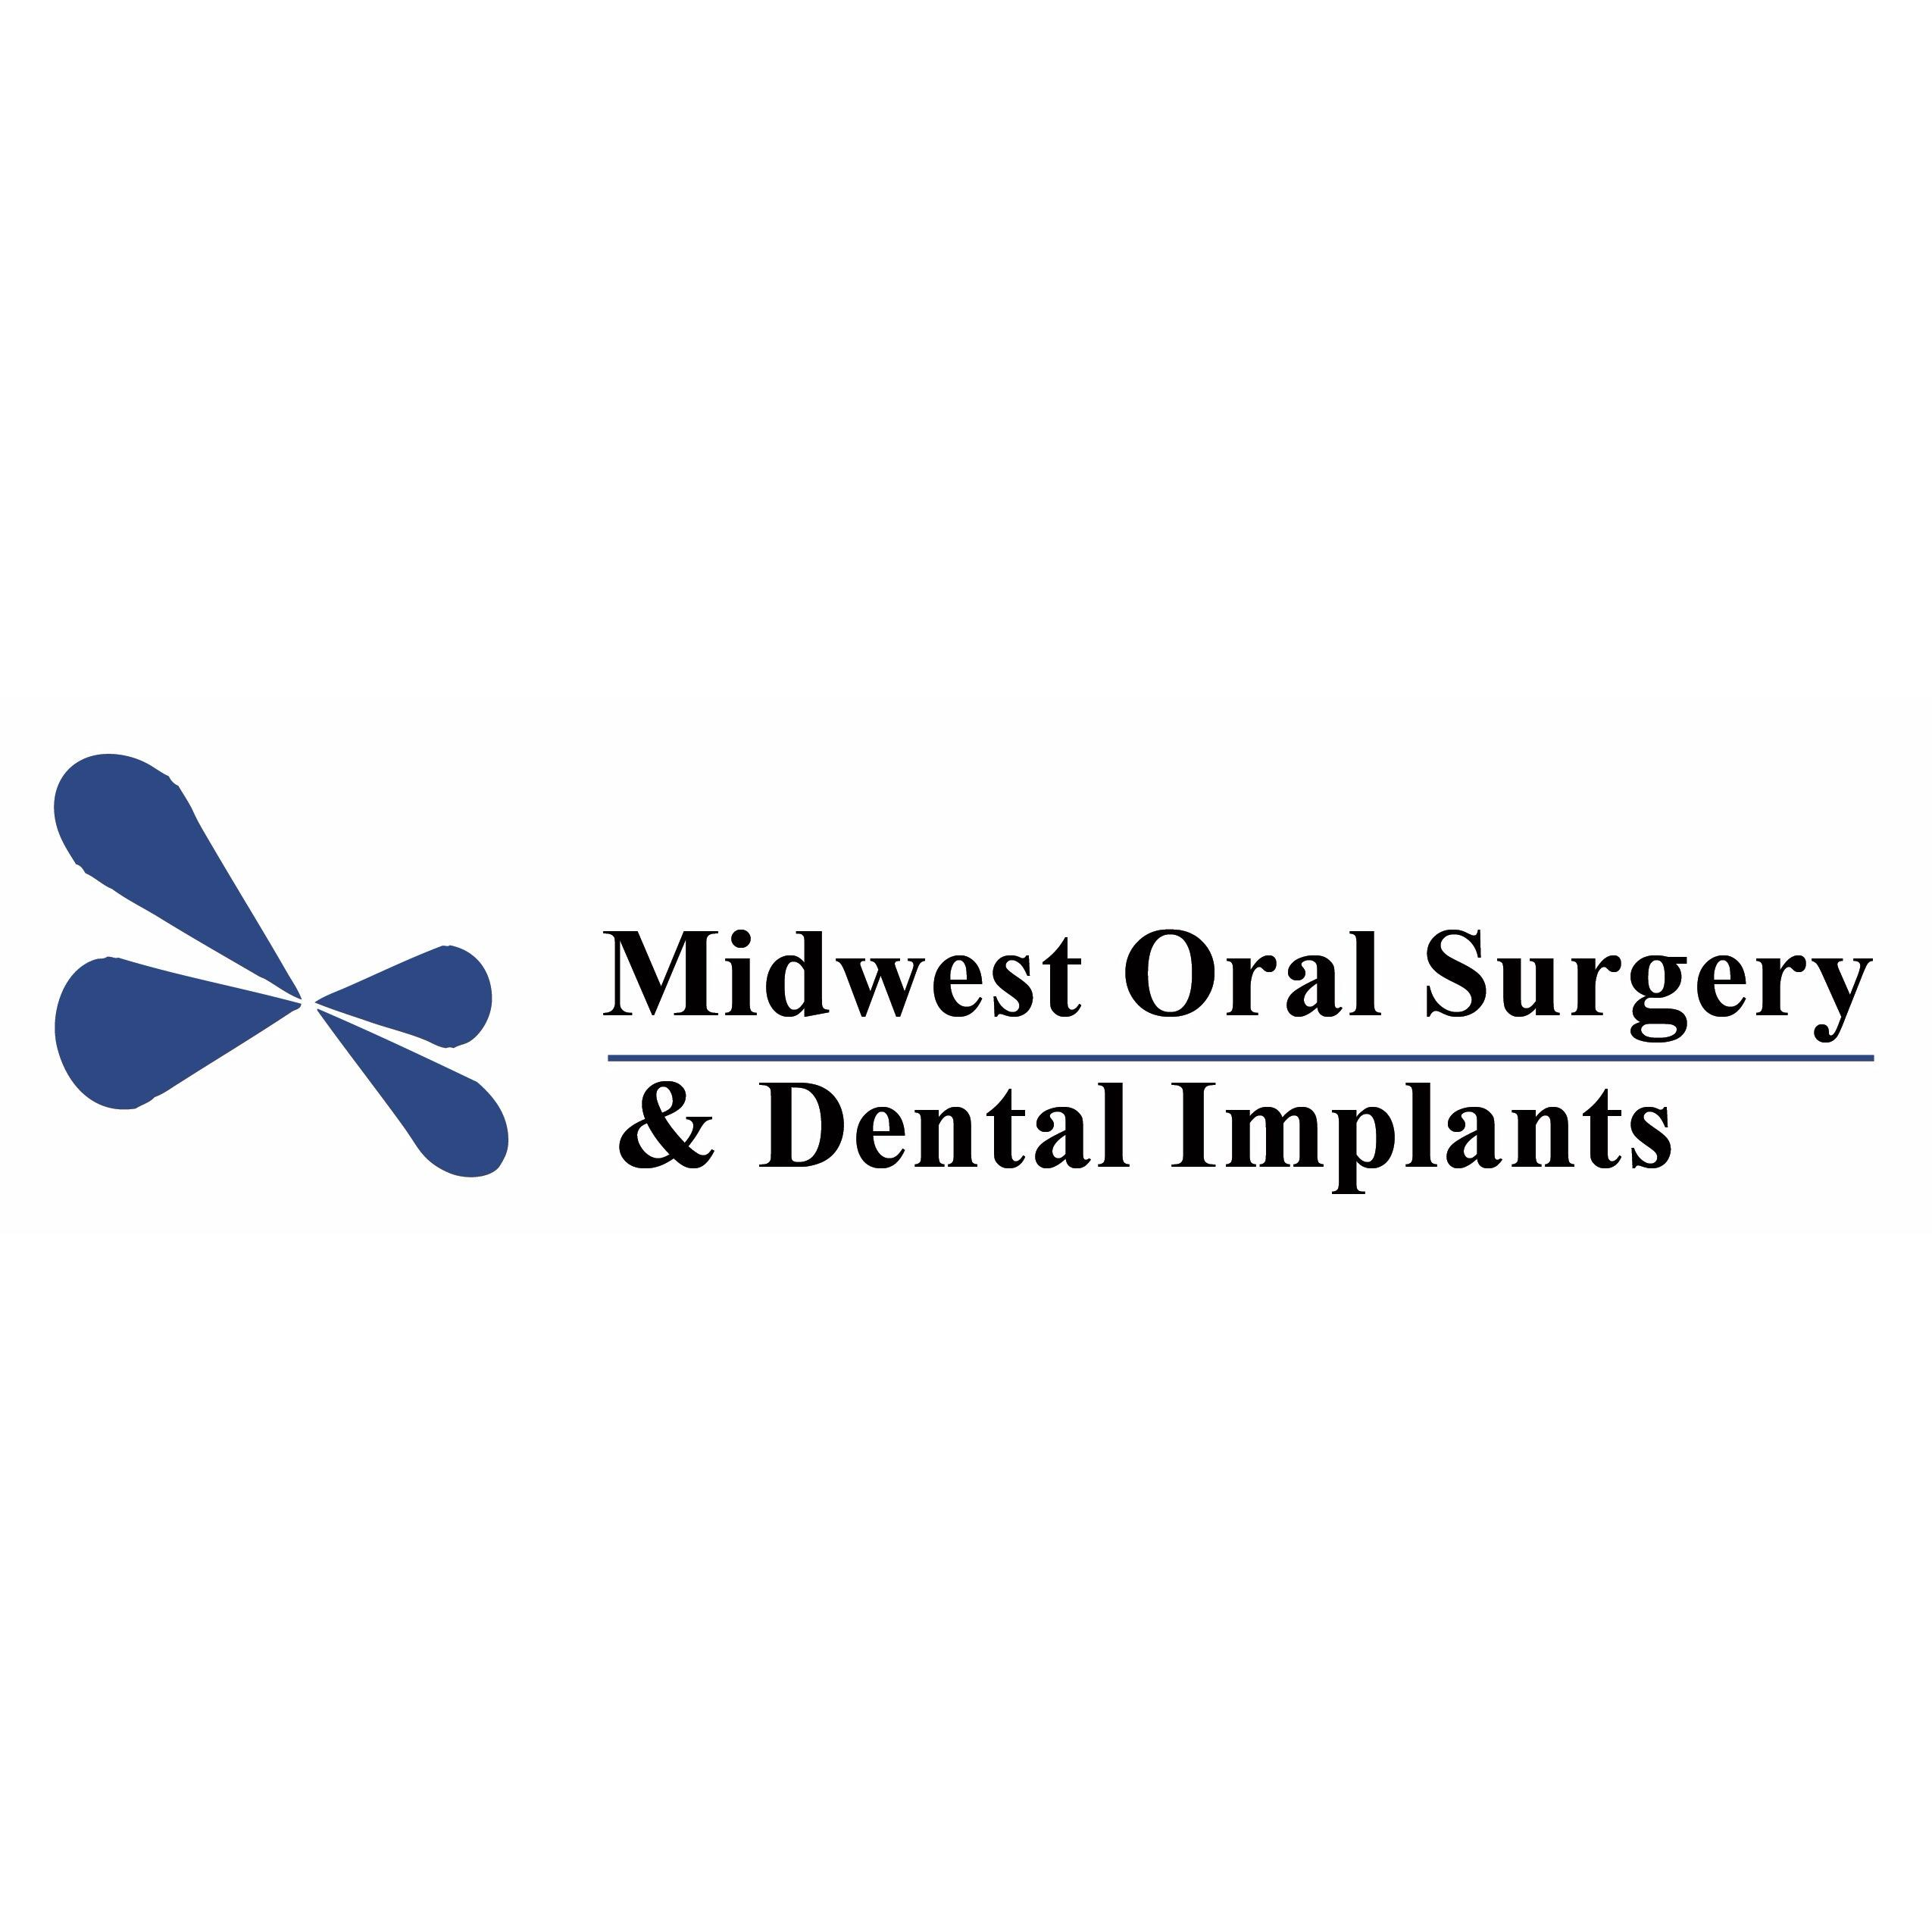 Midwest Oral Surgery & Dental Implants image 4